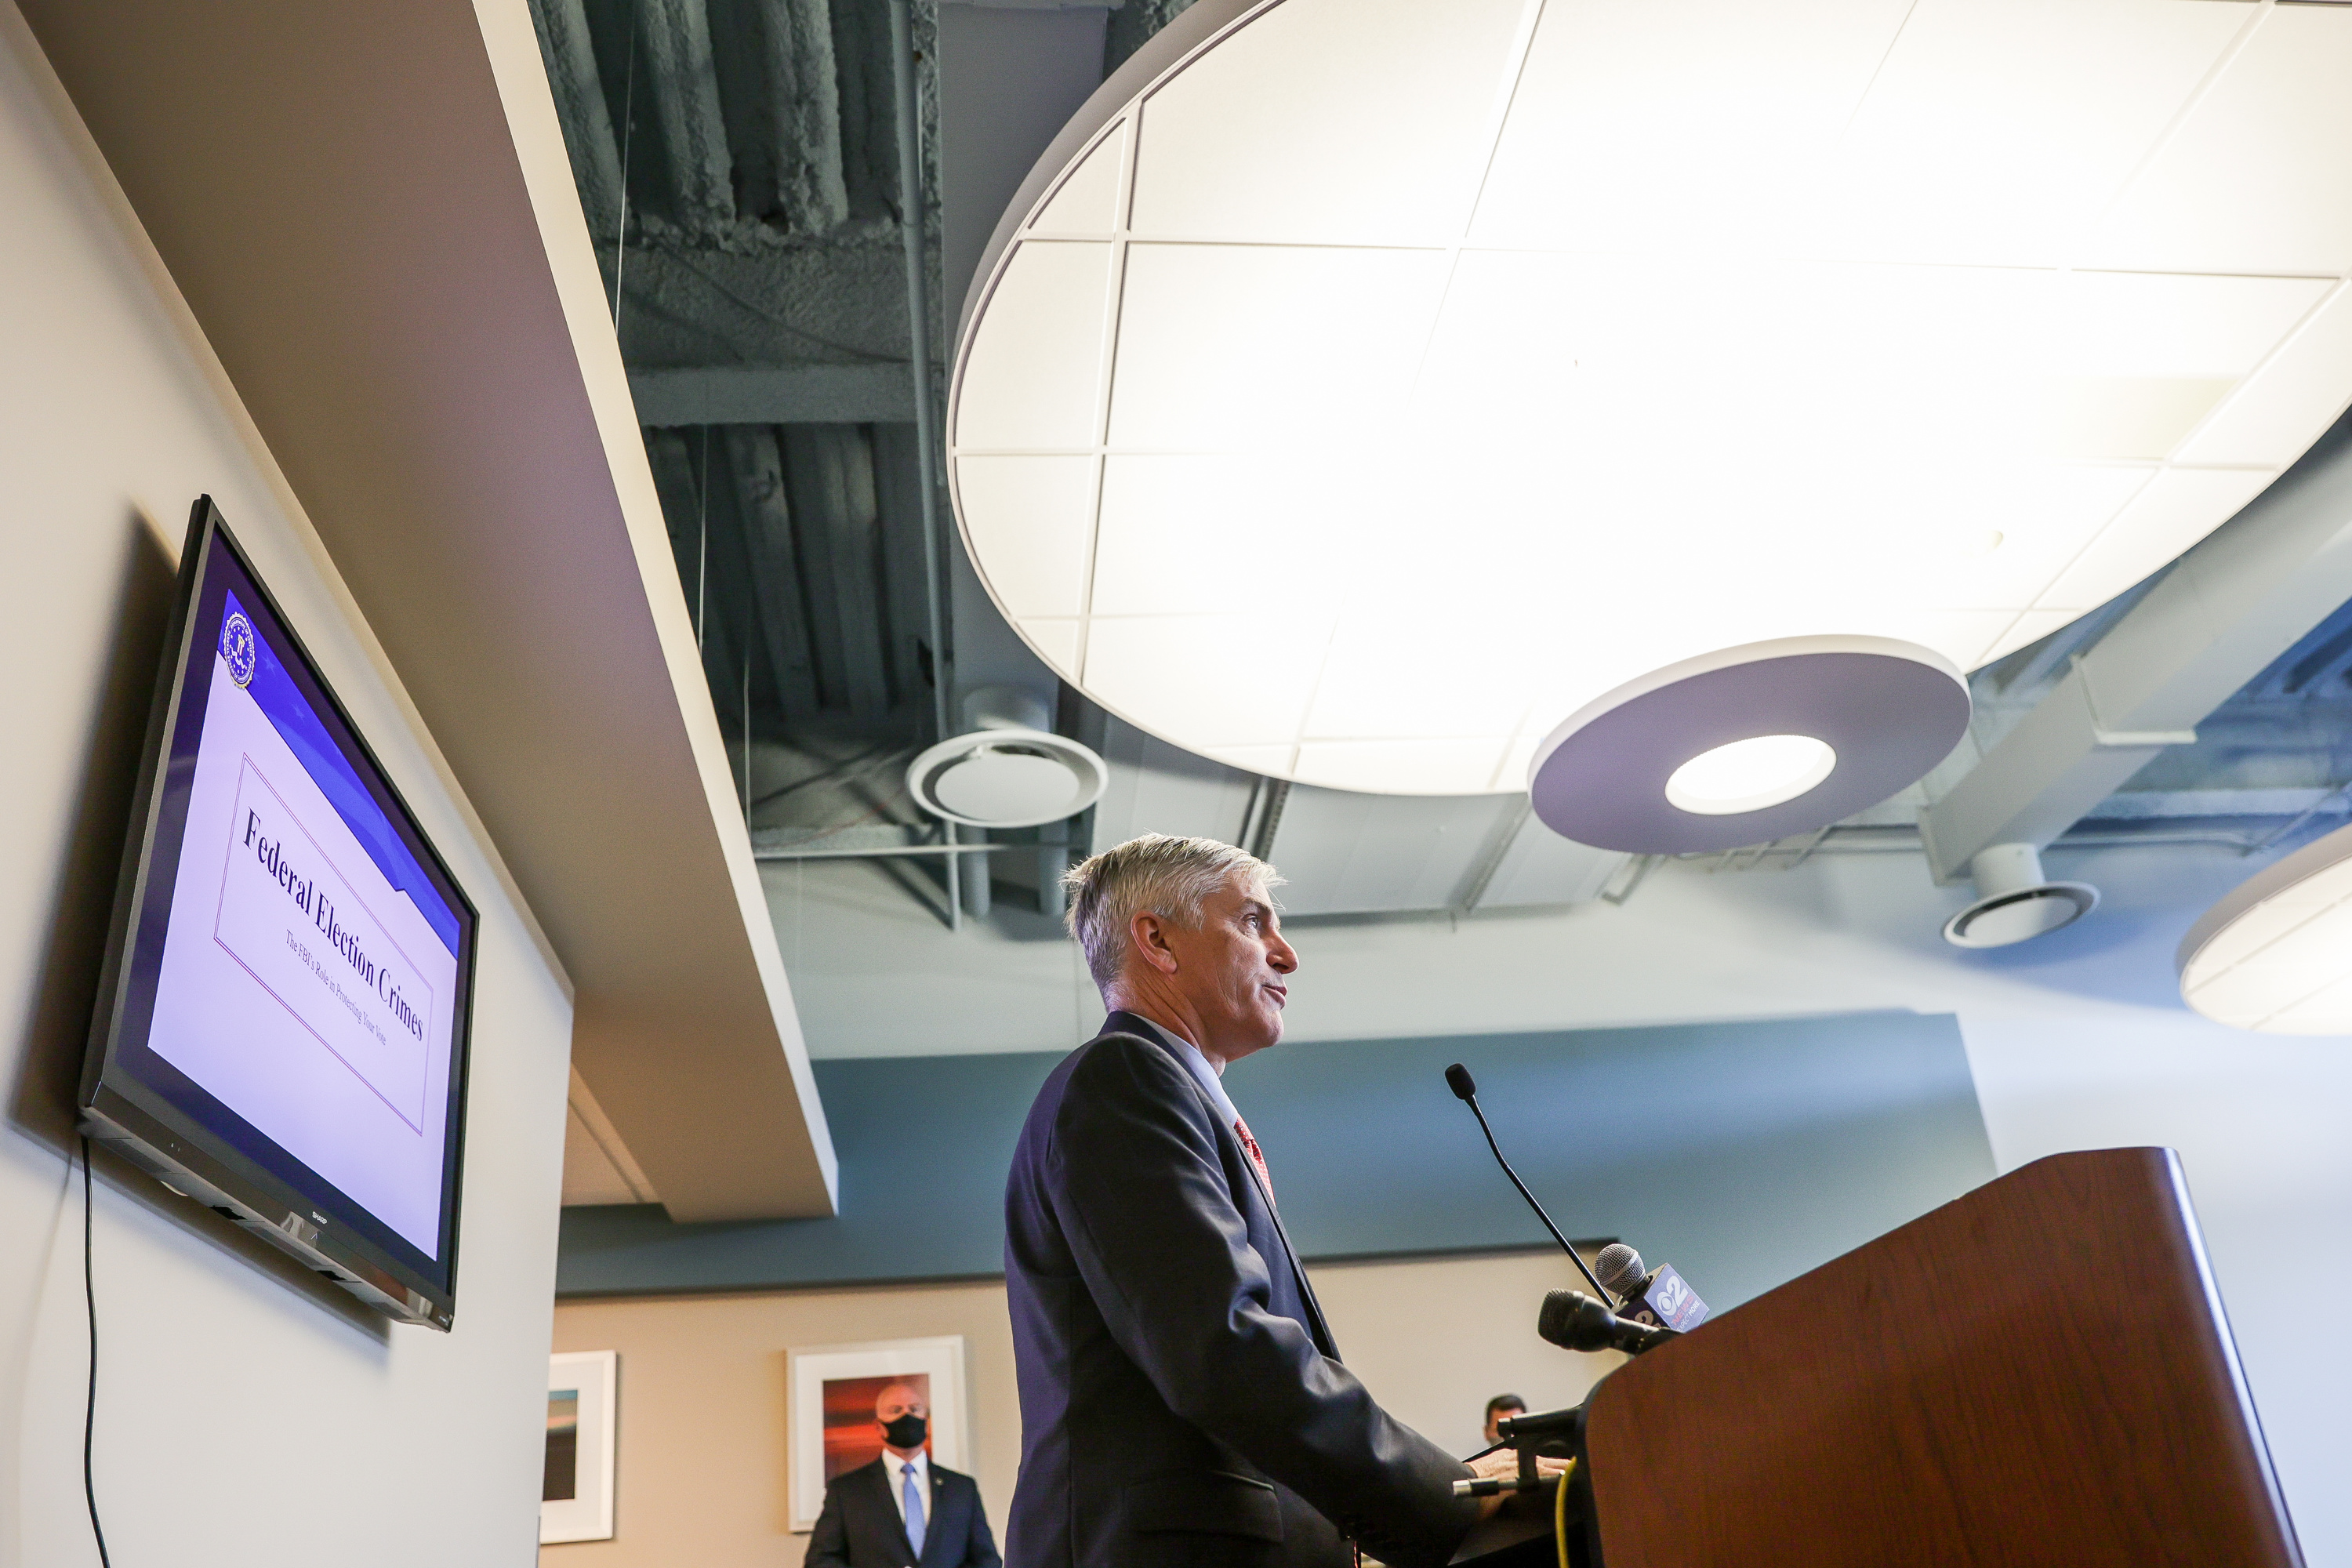 Special Agent in Charge Paul Haertel speaks at a press conference detailing's the FBI's role in election security at the FBI's field office in Salt Lake City on Thursday, Sept. 17, 2020.